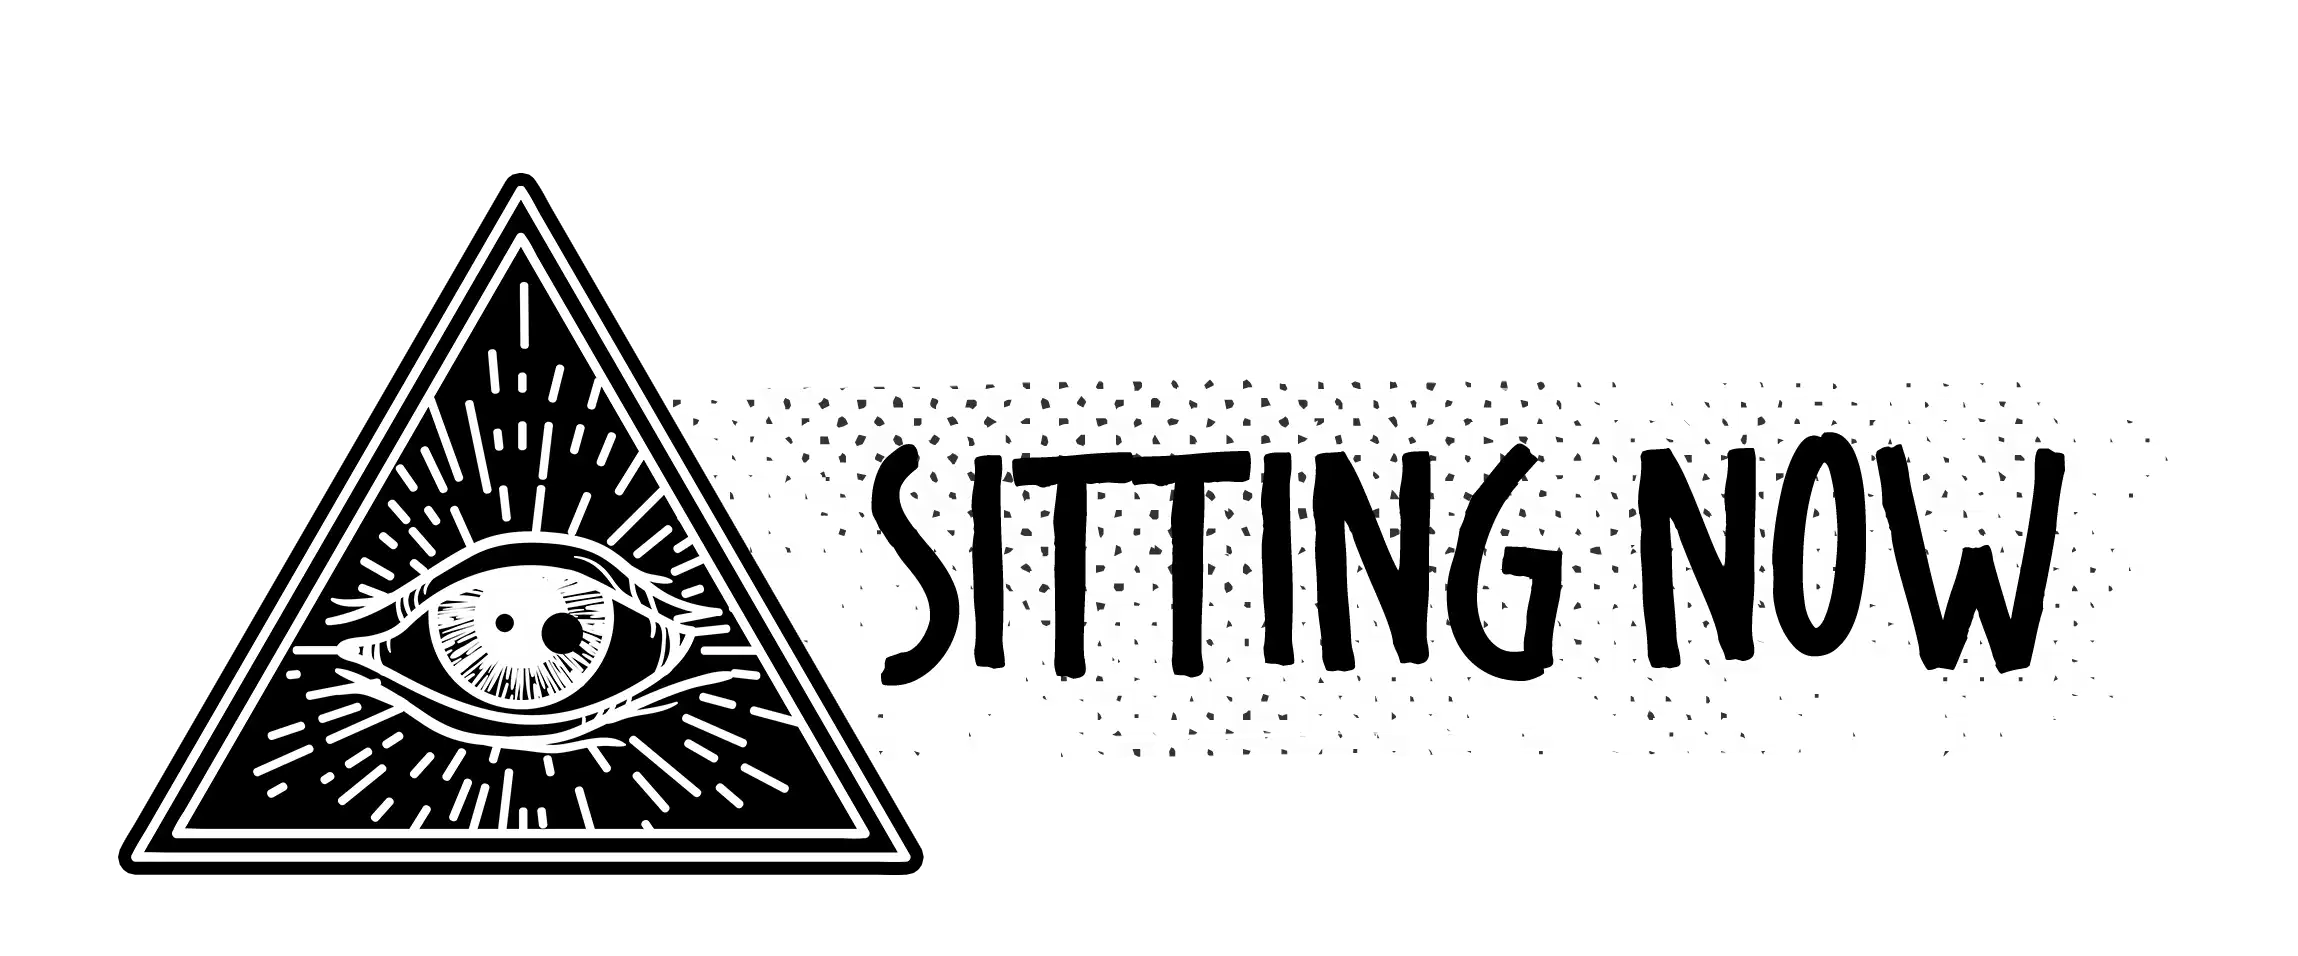 Right Where You Are Sitting Now